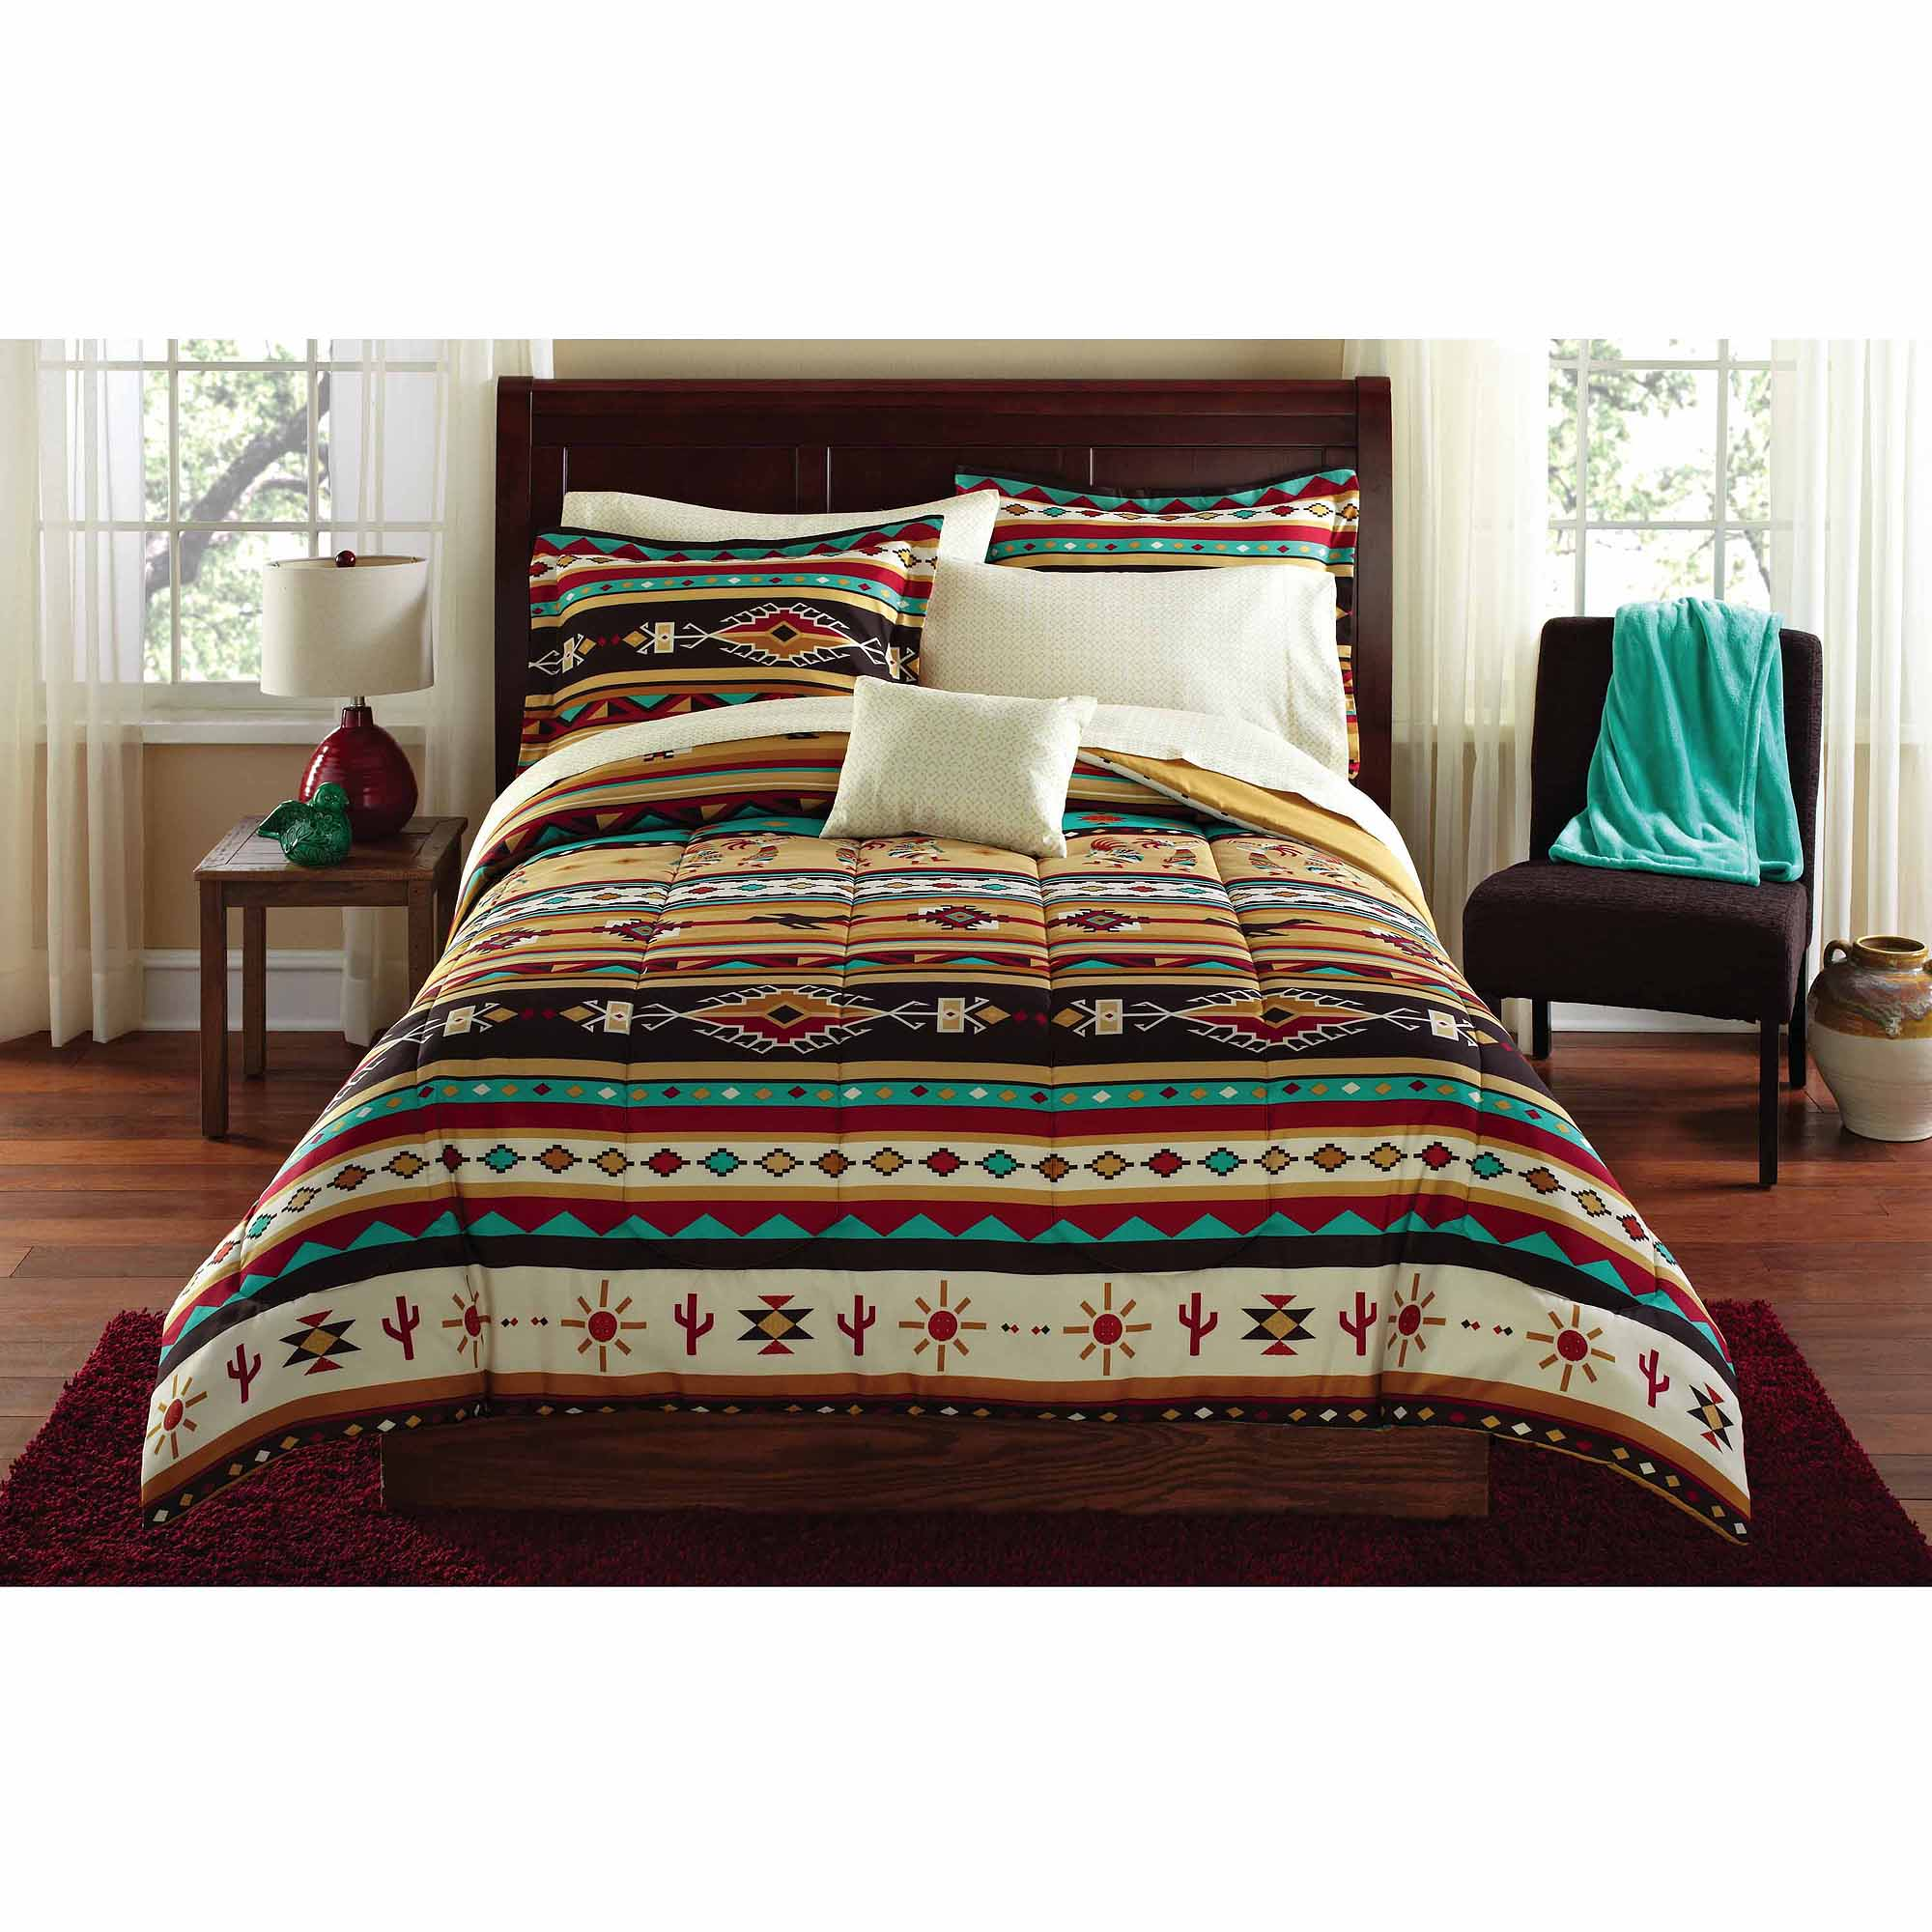 Mainstays Kokopeli Bed in a Bag Coordinated Bedding Set Walmartcom